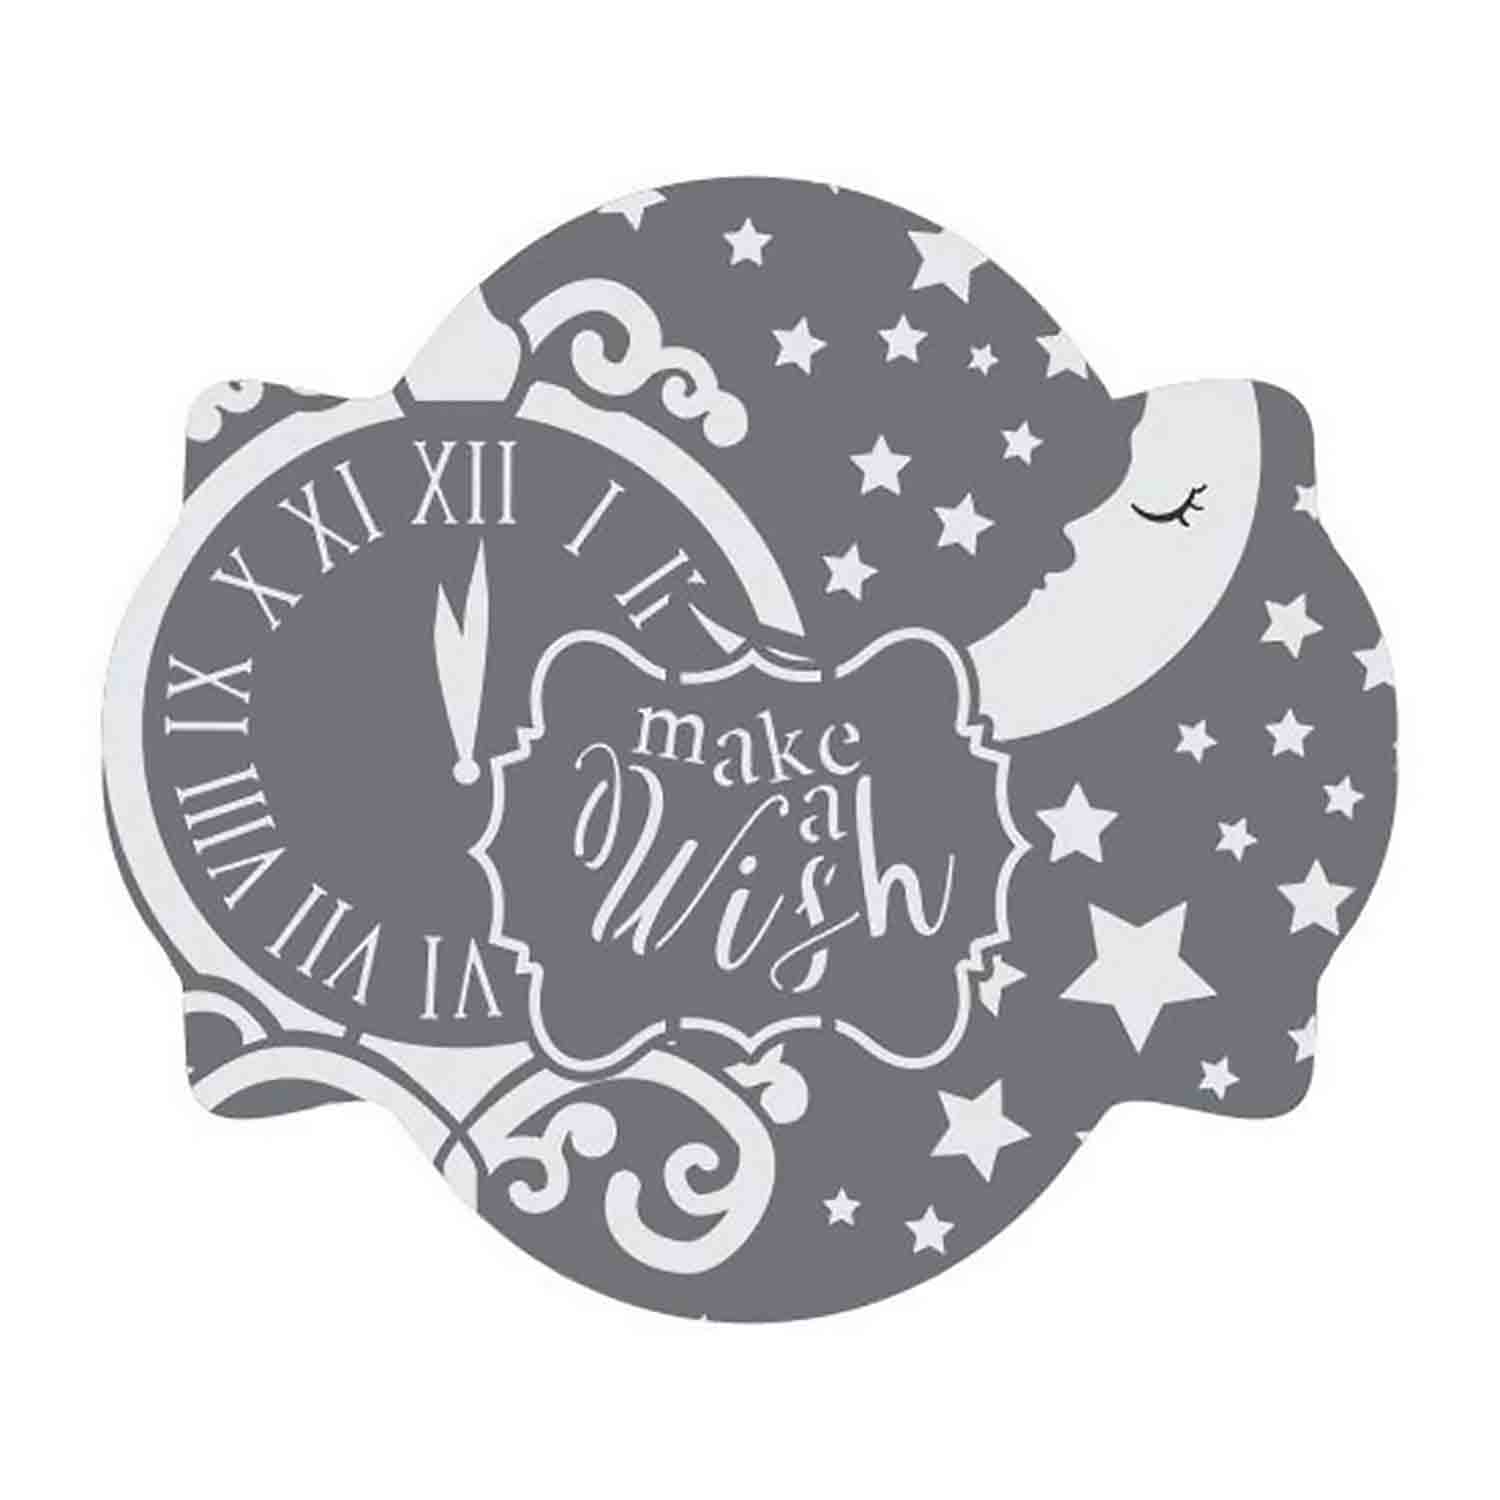 Make a Wish Stencil Set by Julia M Usher